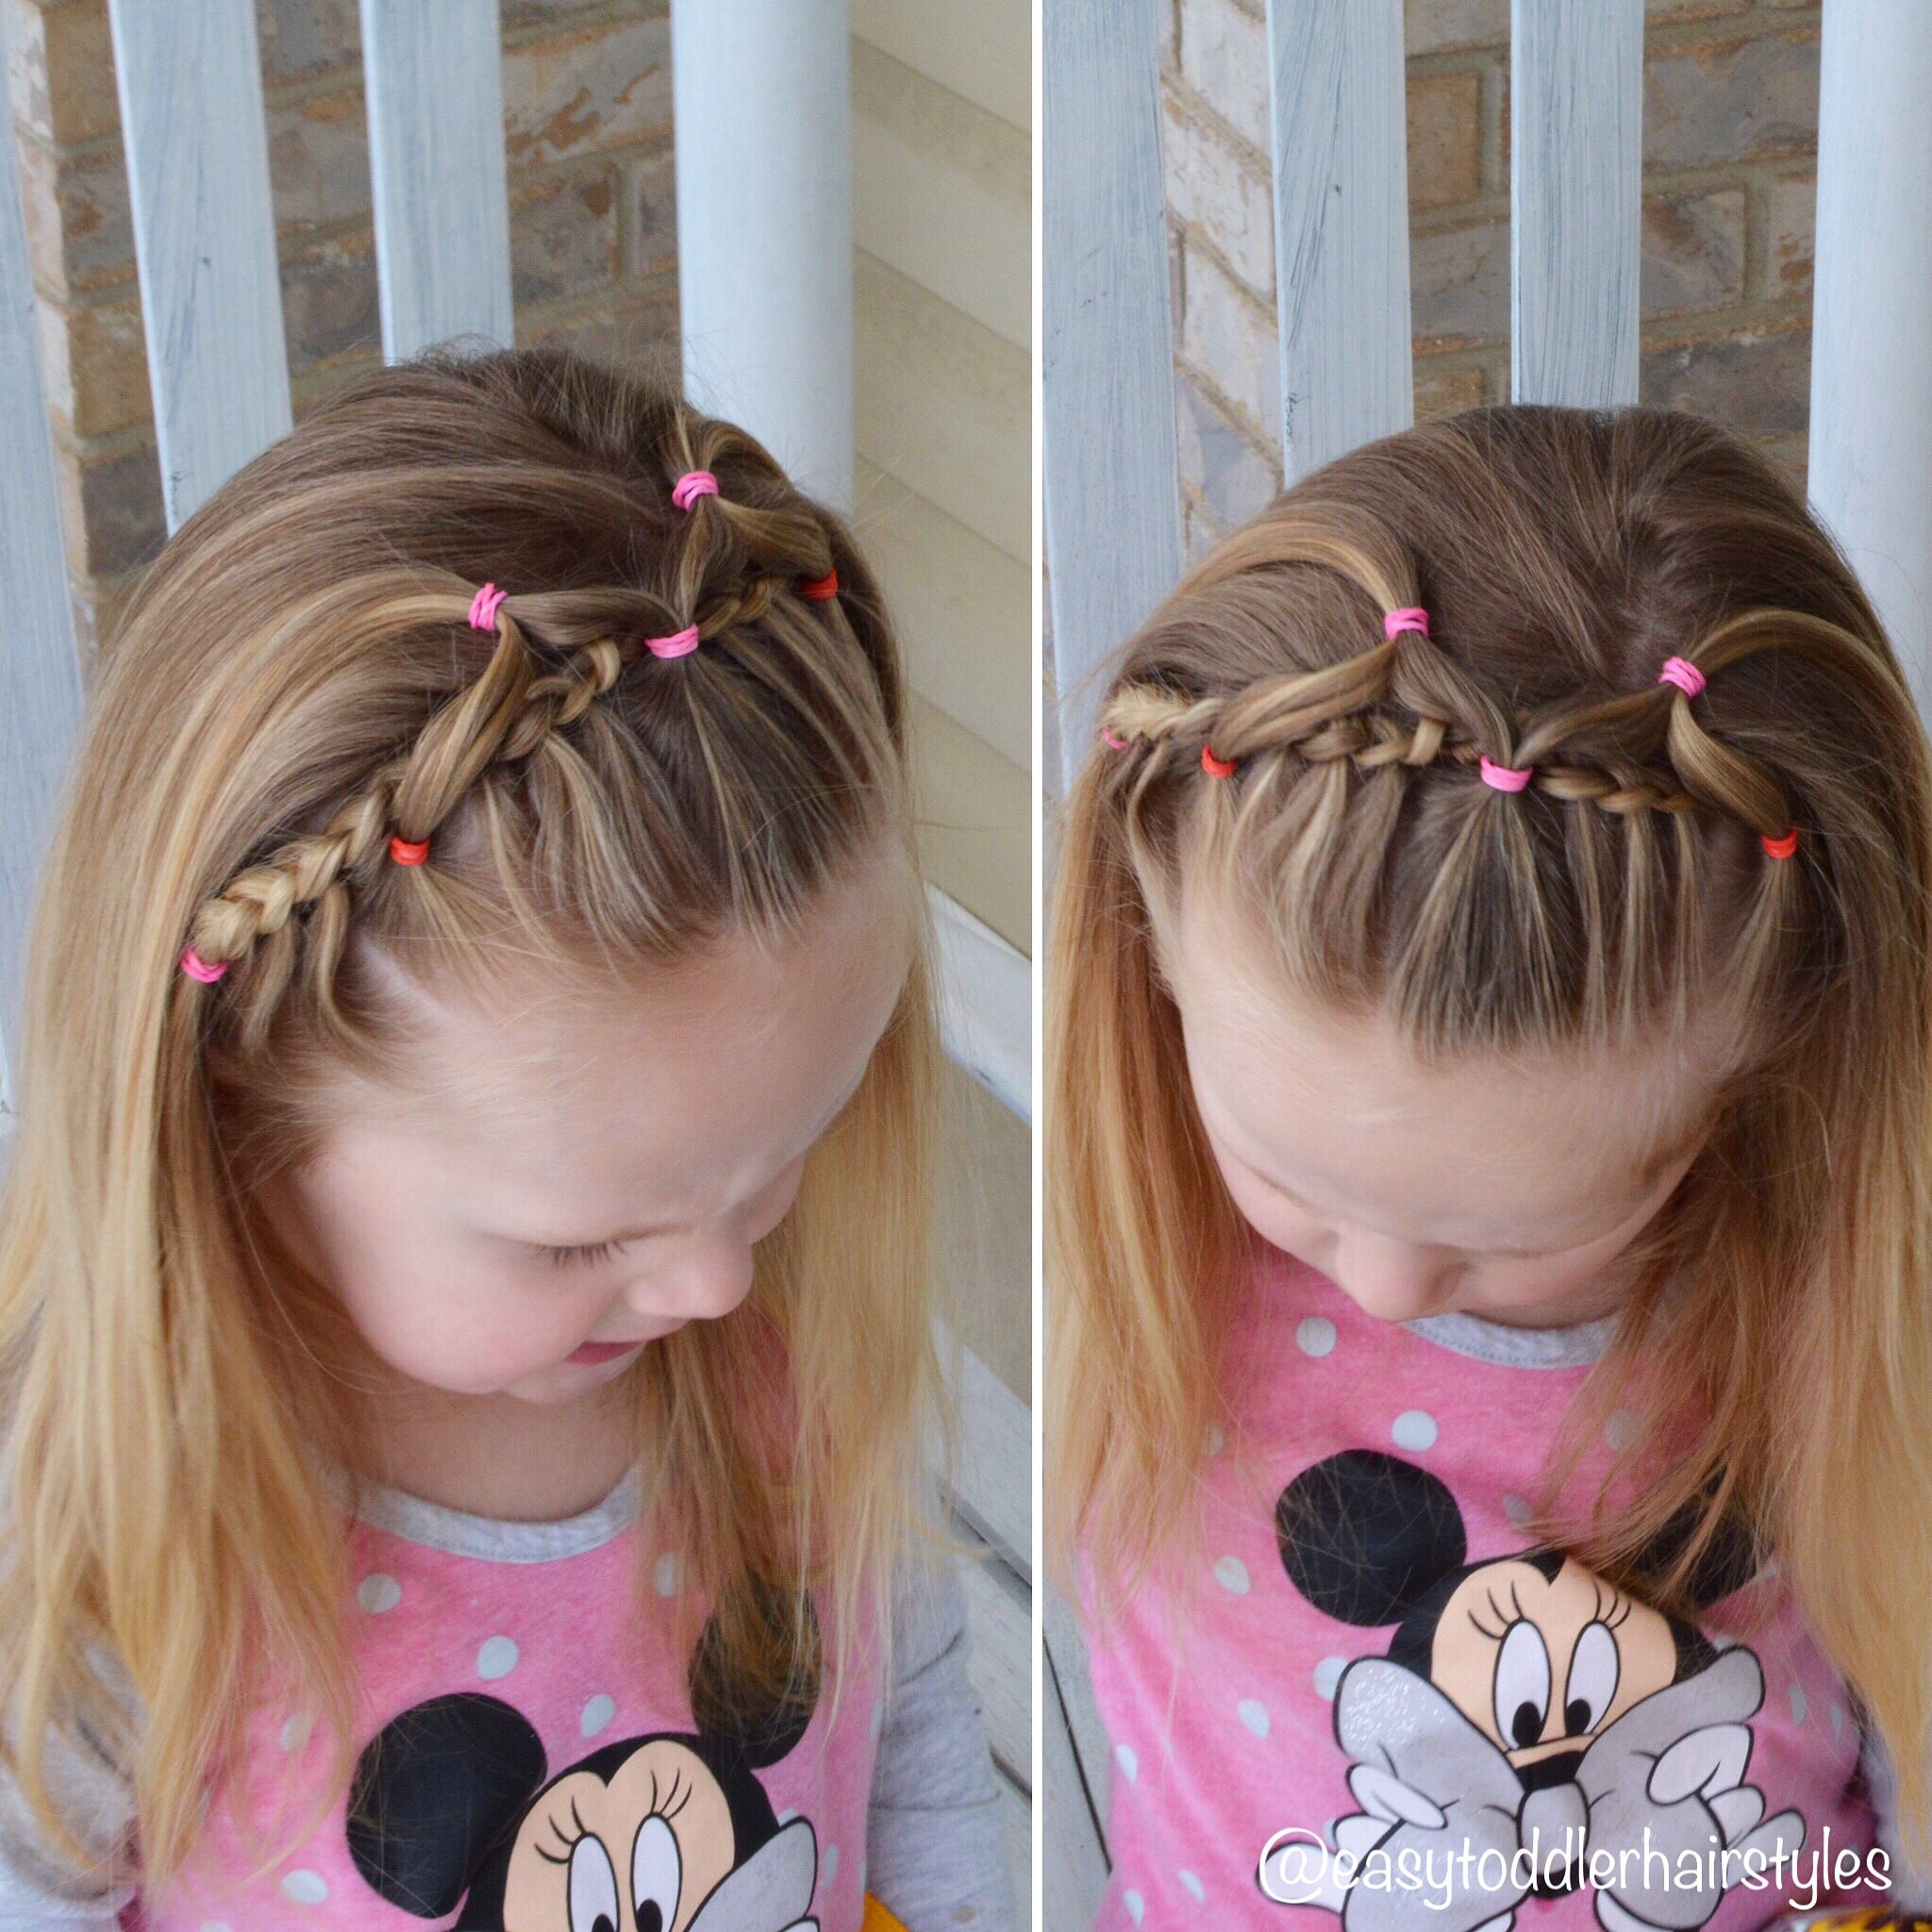 Toddler Hairstyles Cute Braided Toddler Hairstyle  Girls Hairstyle Ideas  Pinterest